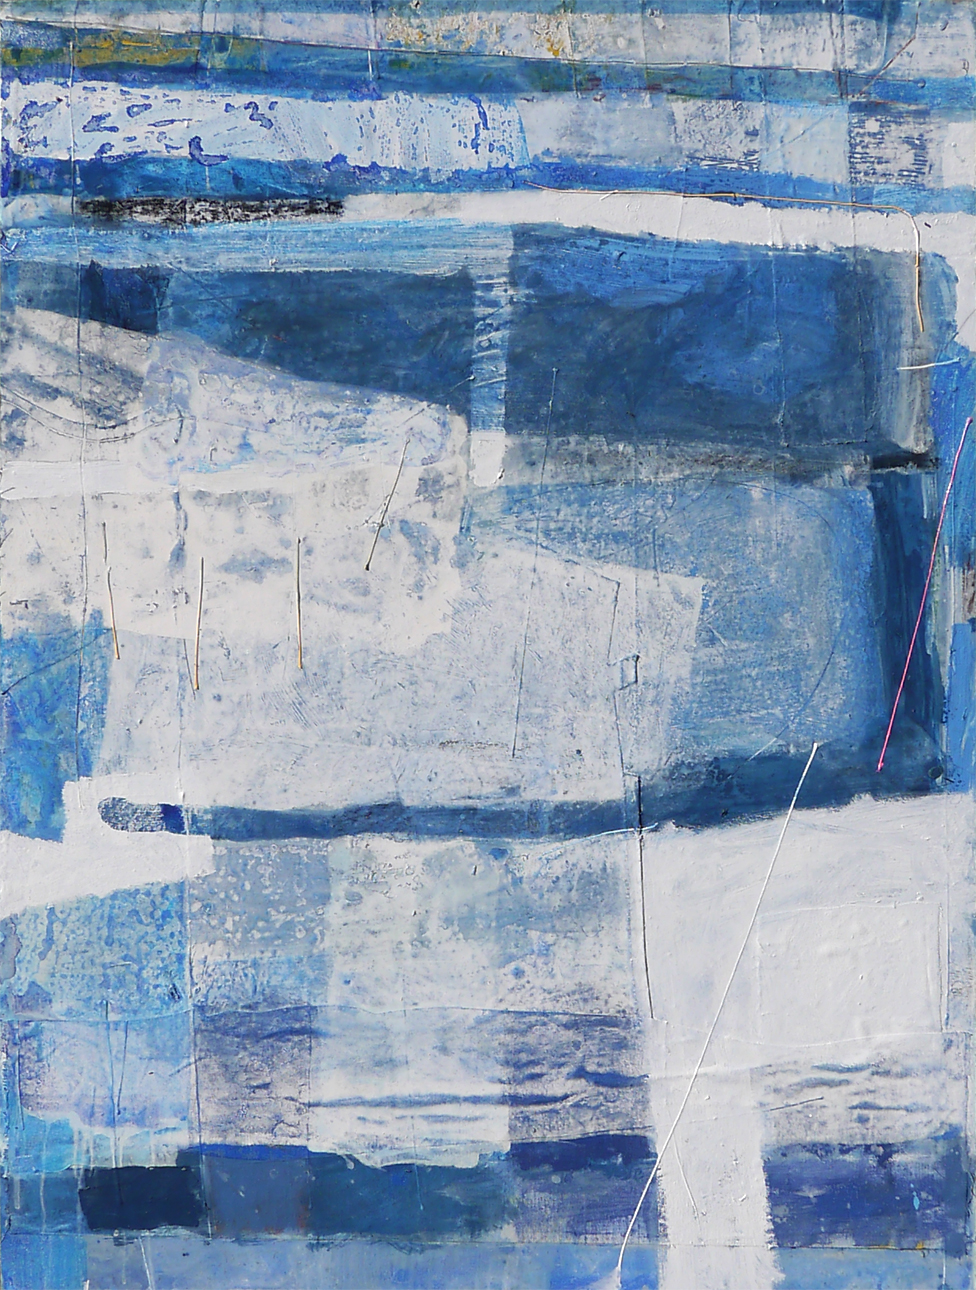 Mowzer 2019 91x122cm mixed media on board Paintings RECENT